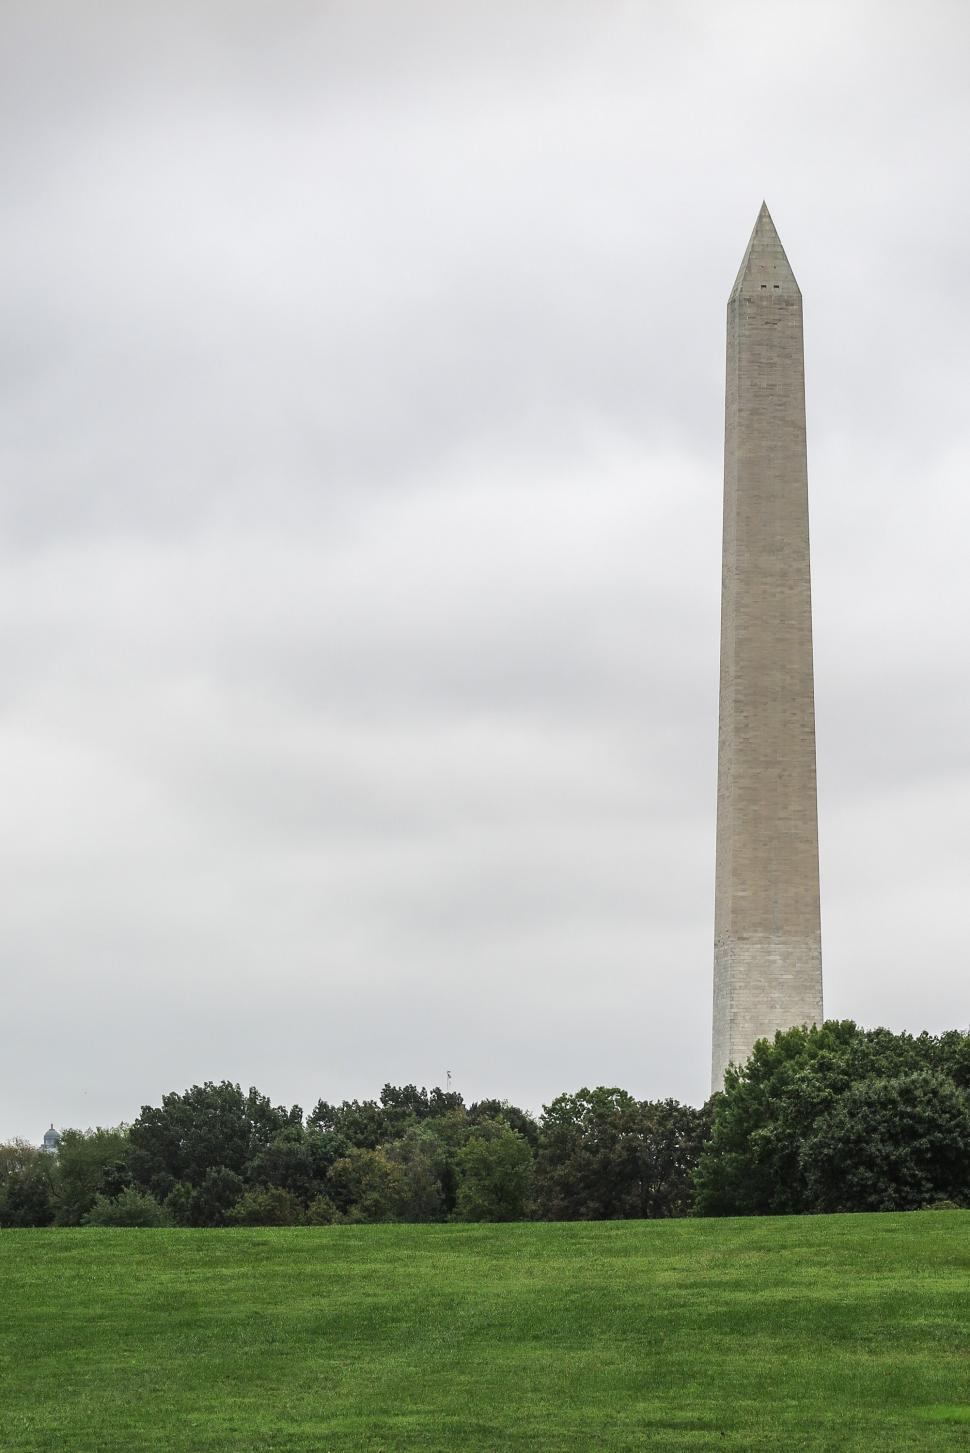 Download Free Stock HD Photo of Obelisk of the Washington Monument Online